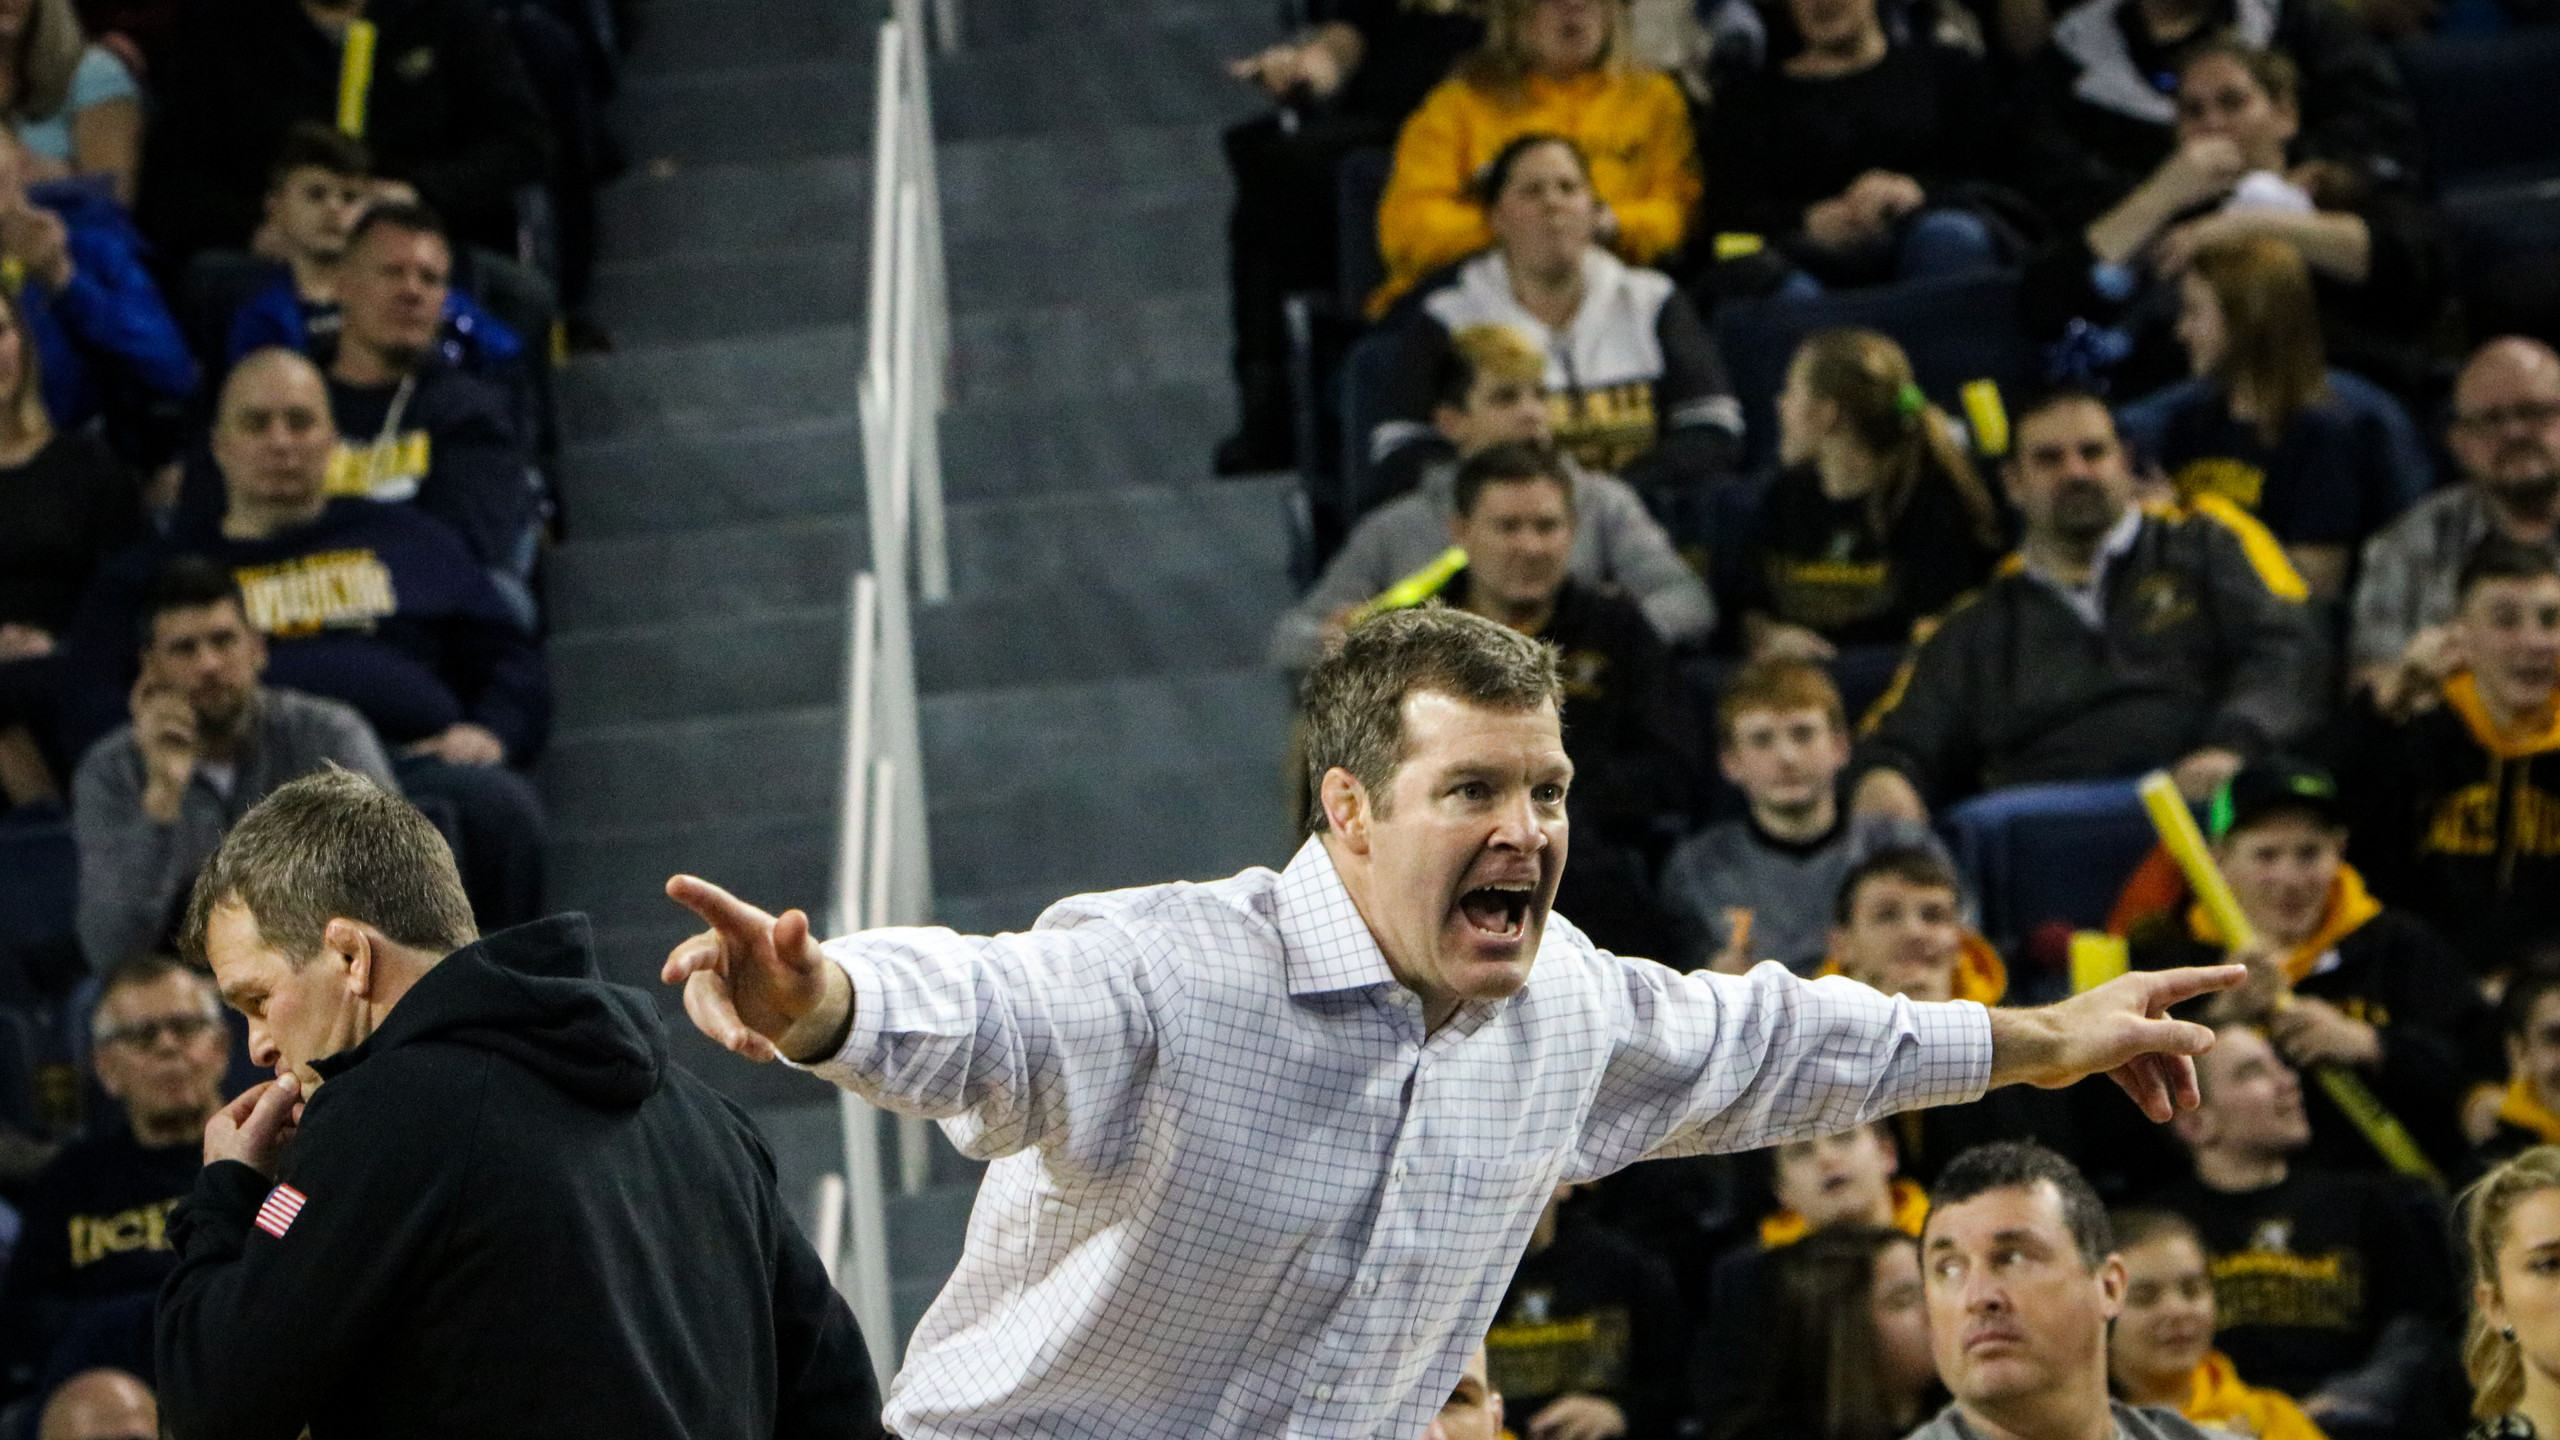 Iowa head coach Tom Brands voices his displeasure on the edge of the mat.